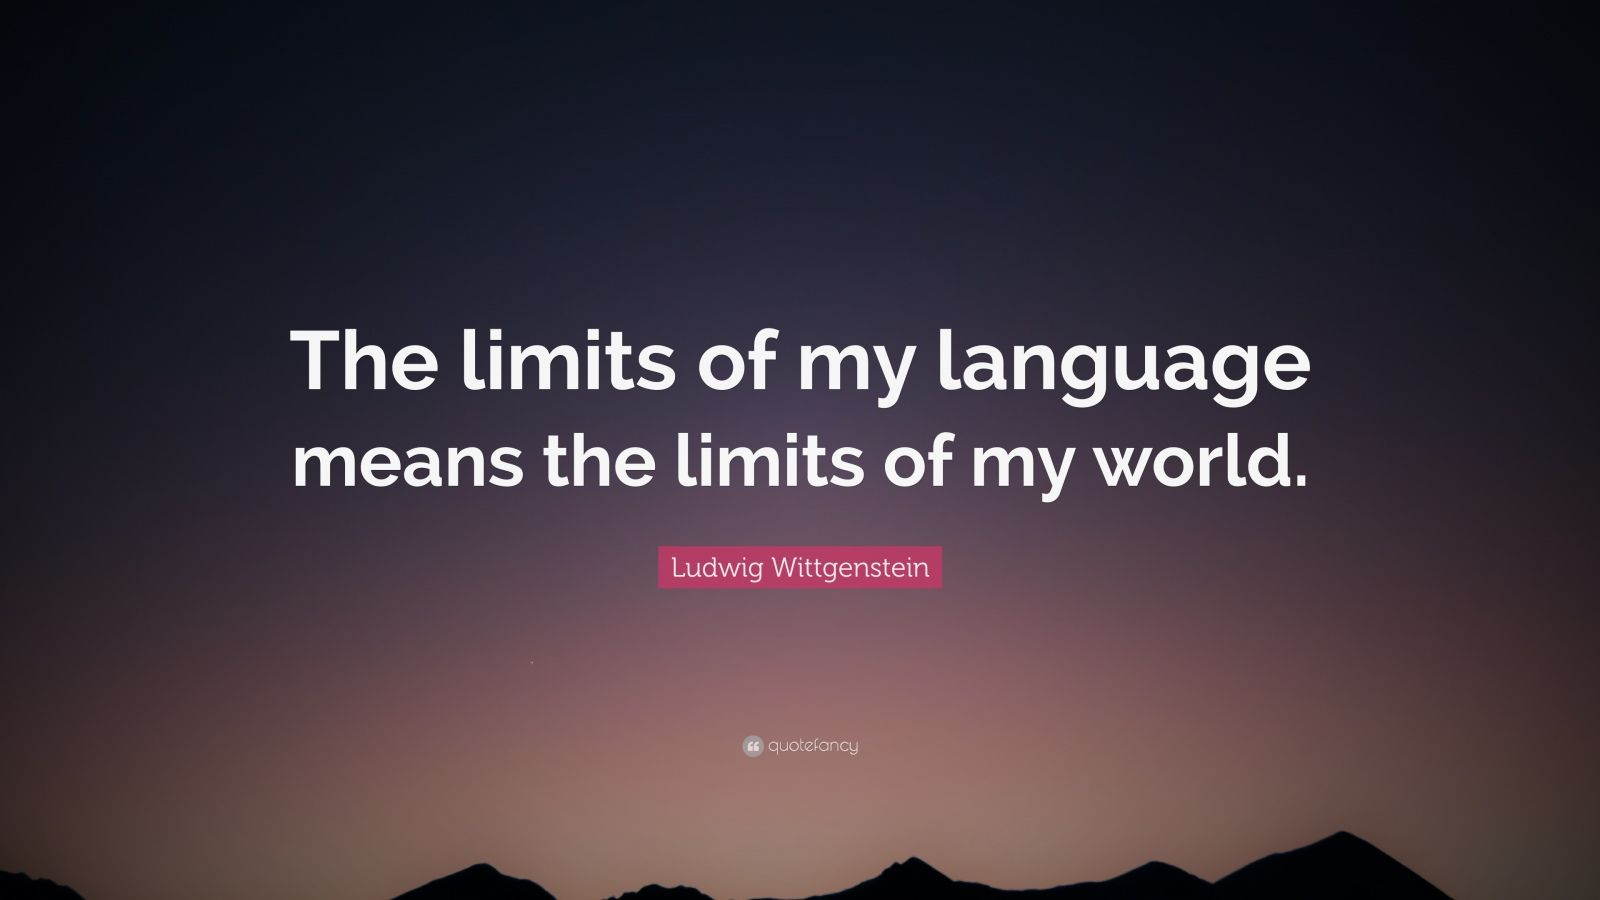 Chanakya Quotes Wallpaper Ludwig Wittgenstein Quote The Limits Of My Language